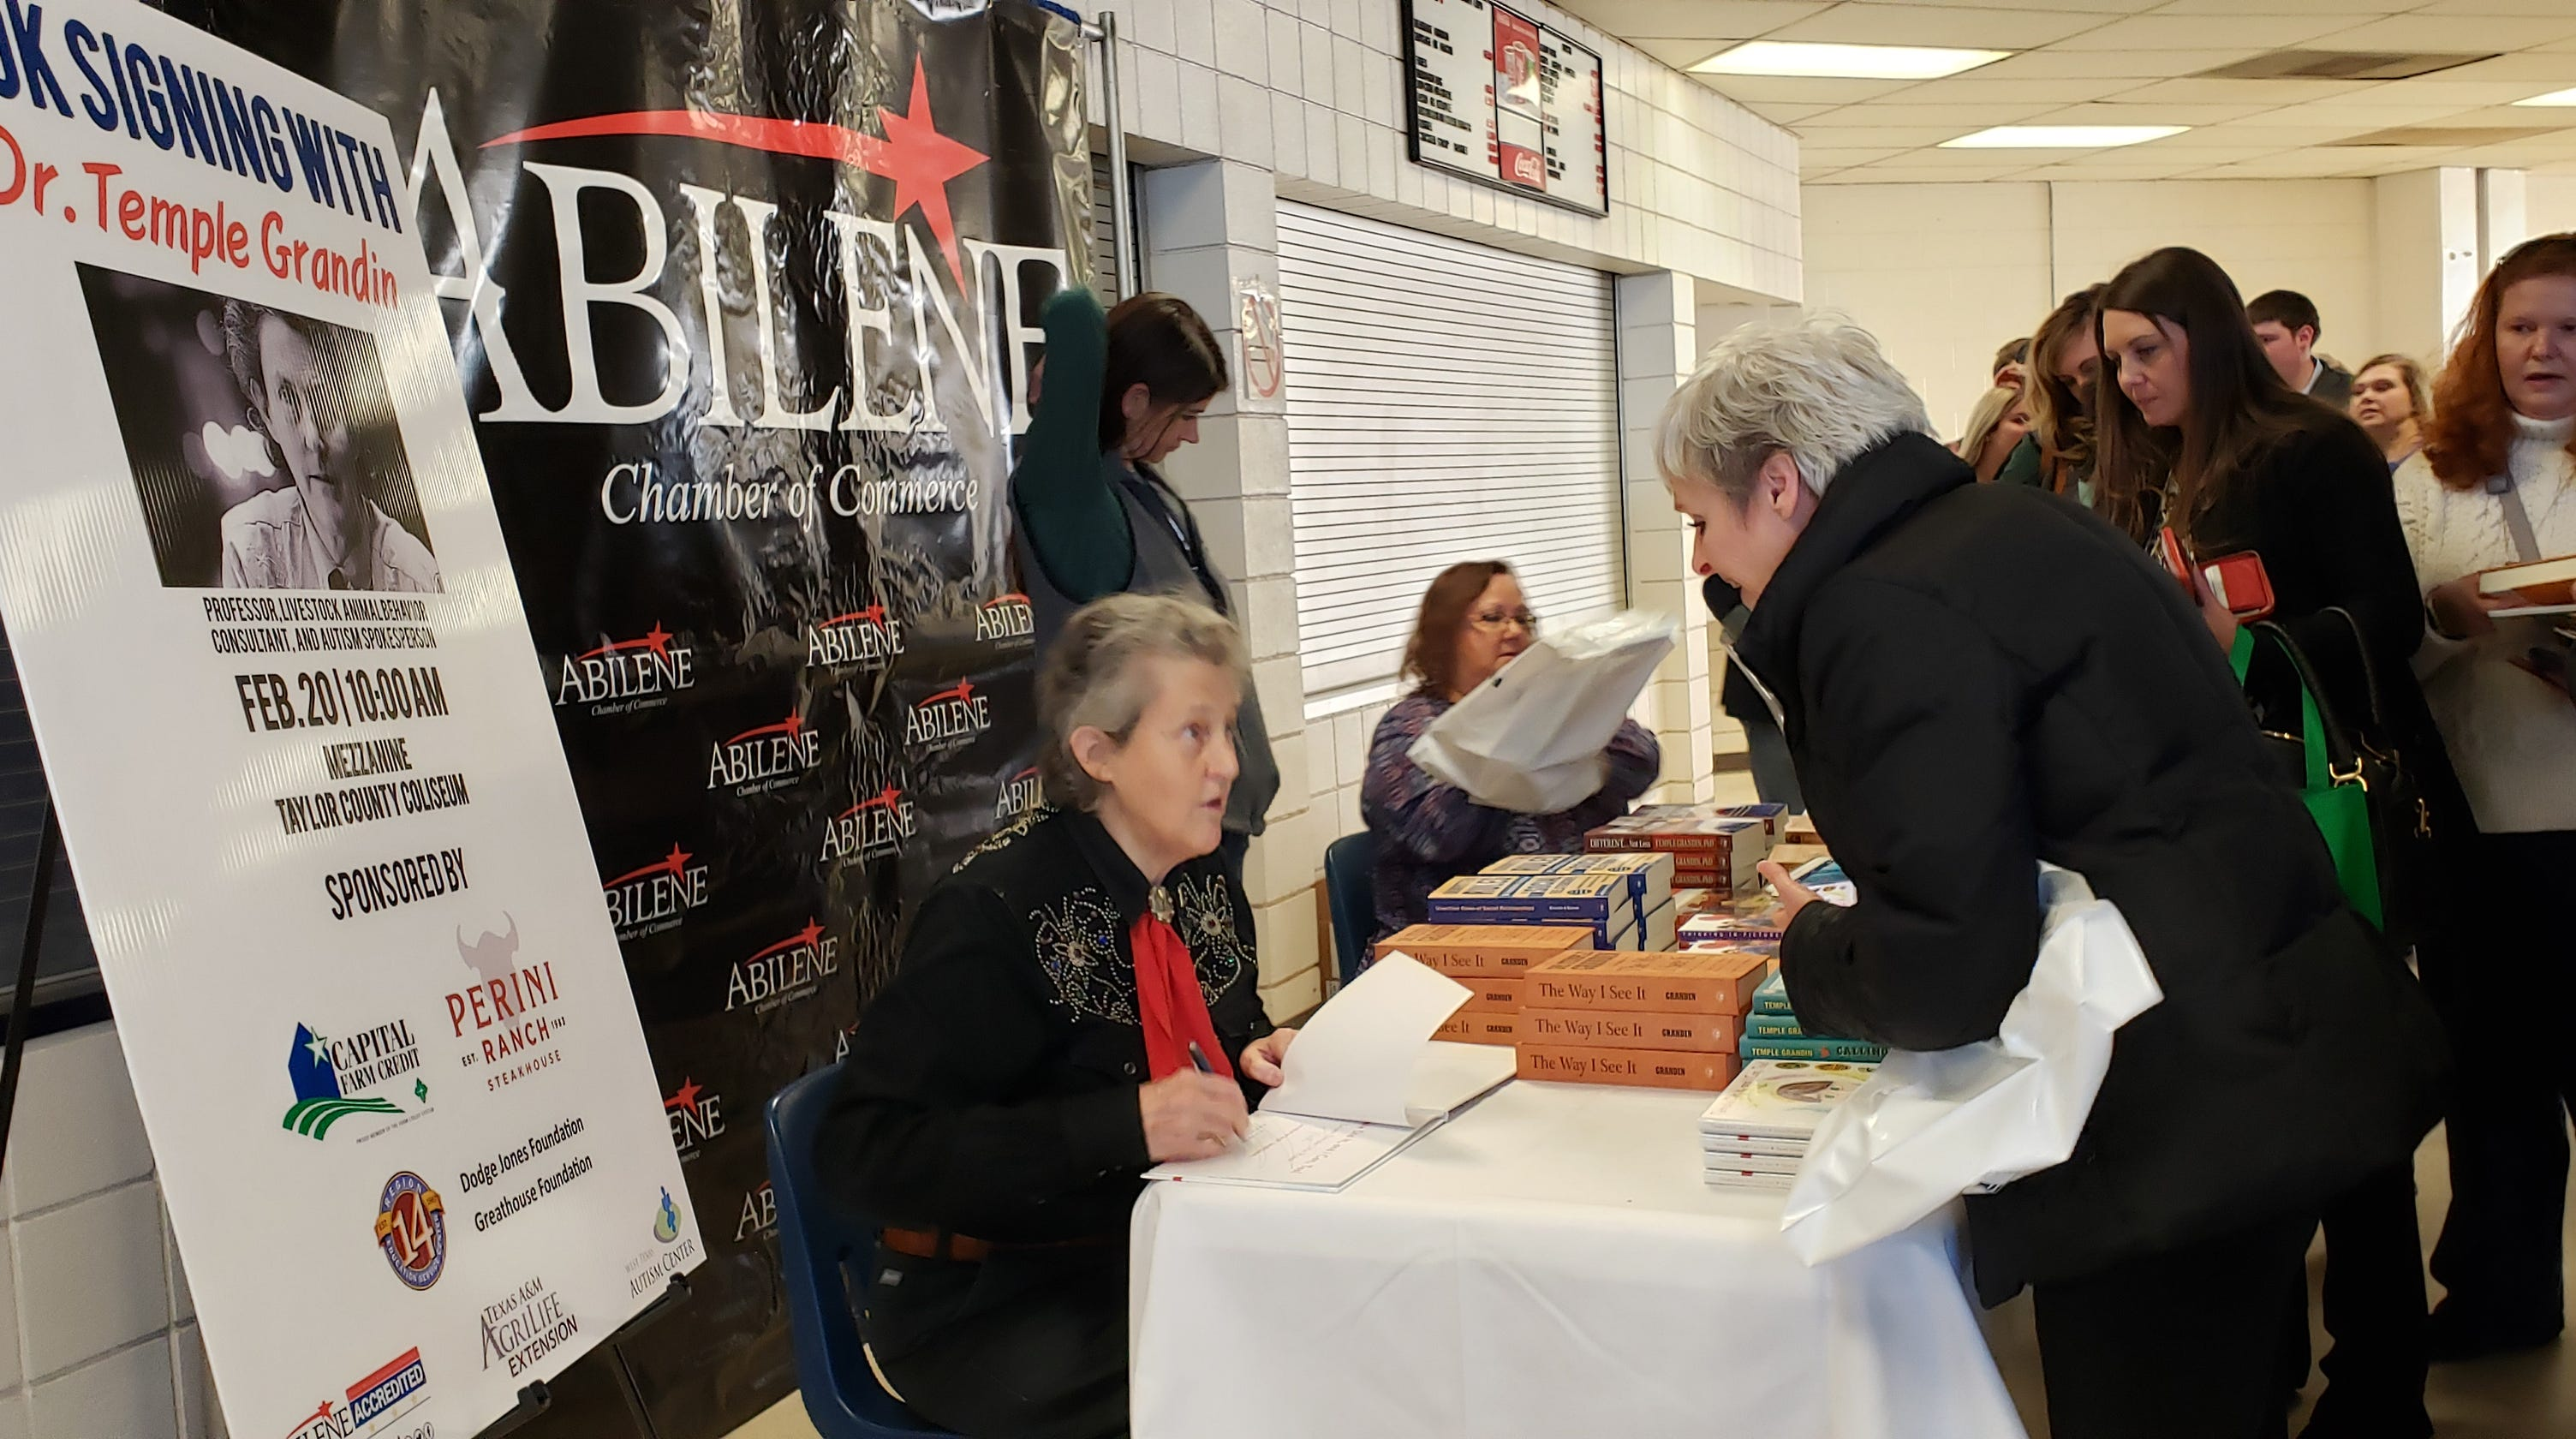 Temple Grandin: Children with autism, other 'labels' should be given tools to succeed